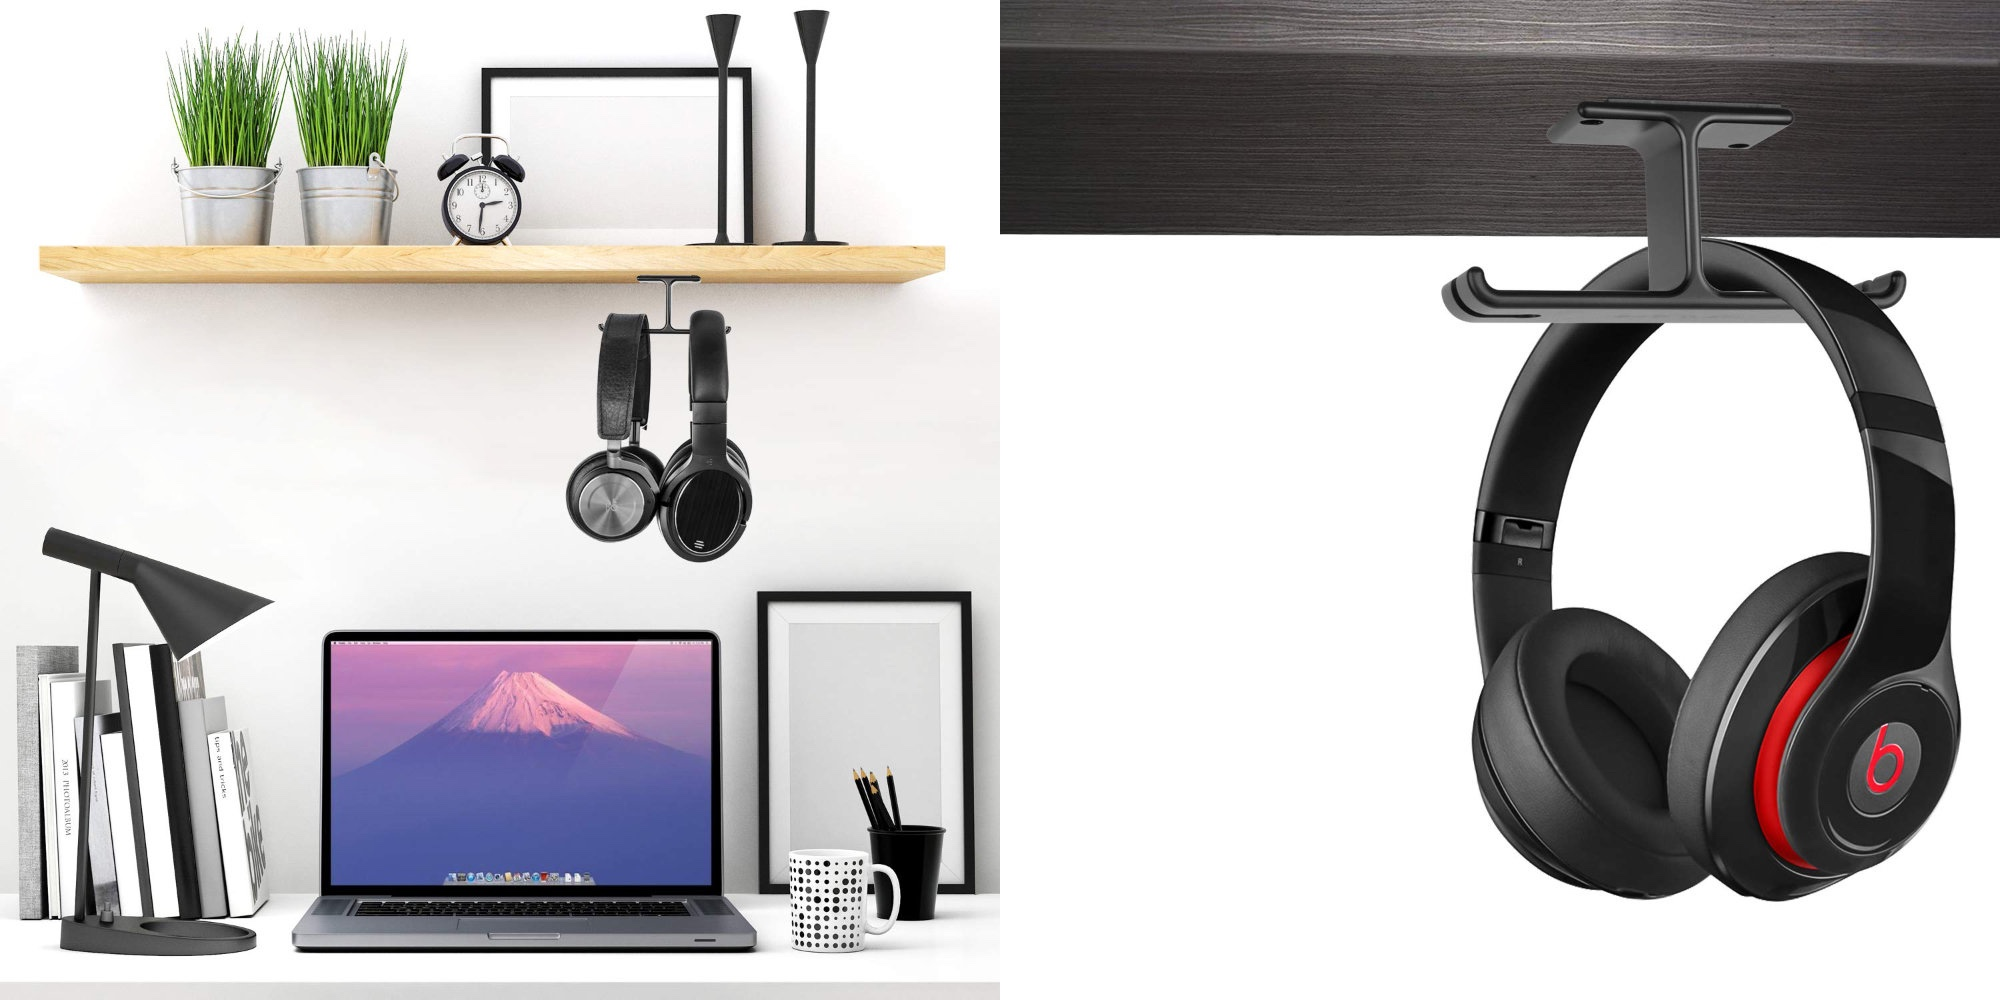 Reduce some of that clutter atop your desk w/ this headphone hanger for just $4 (55% off)